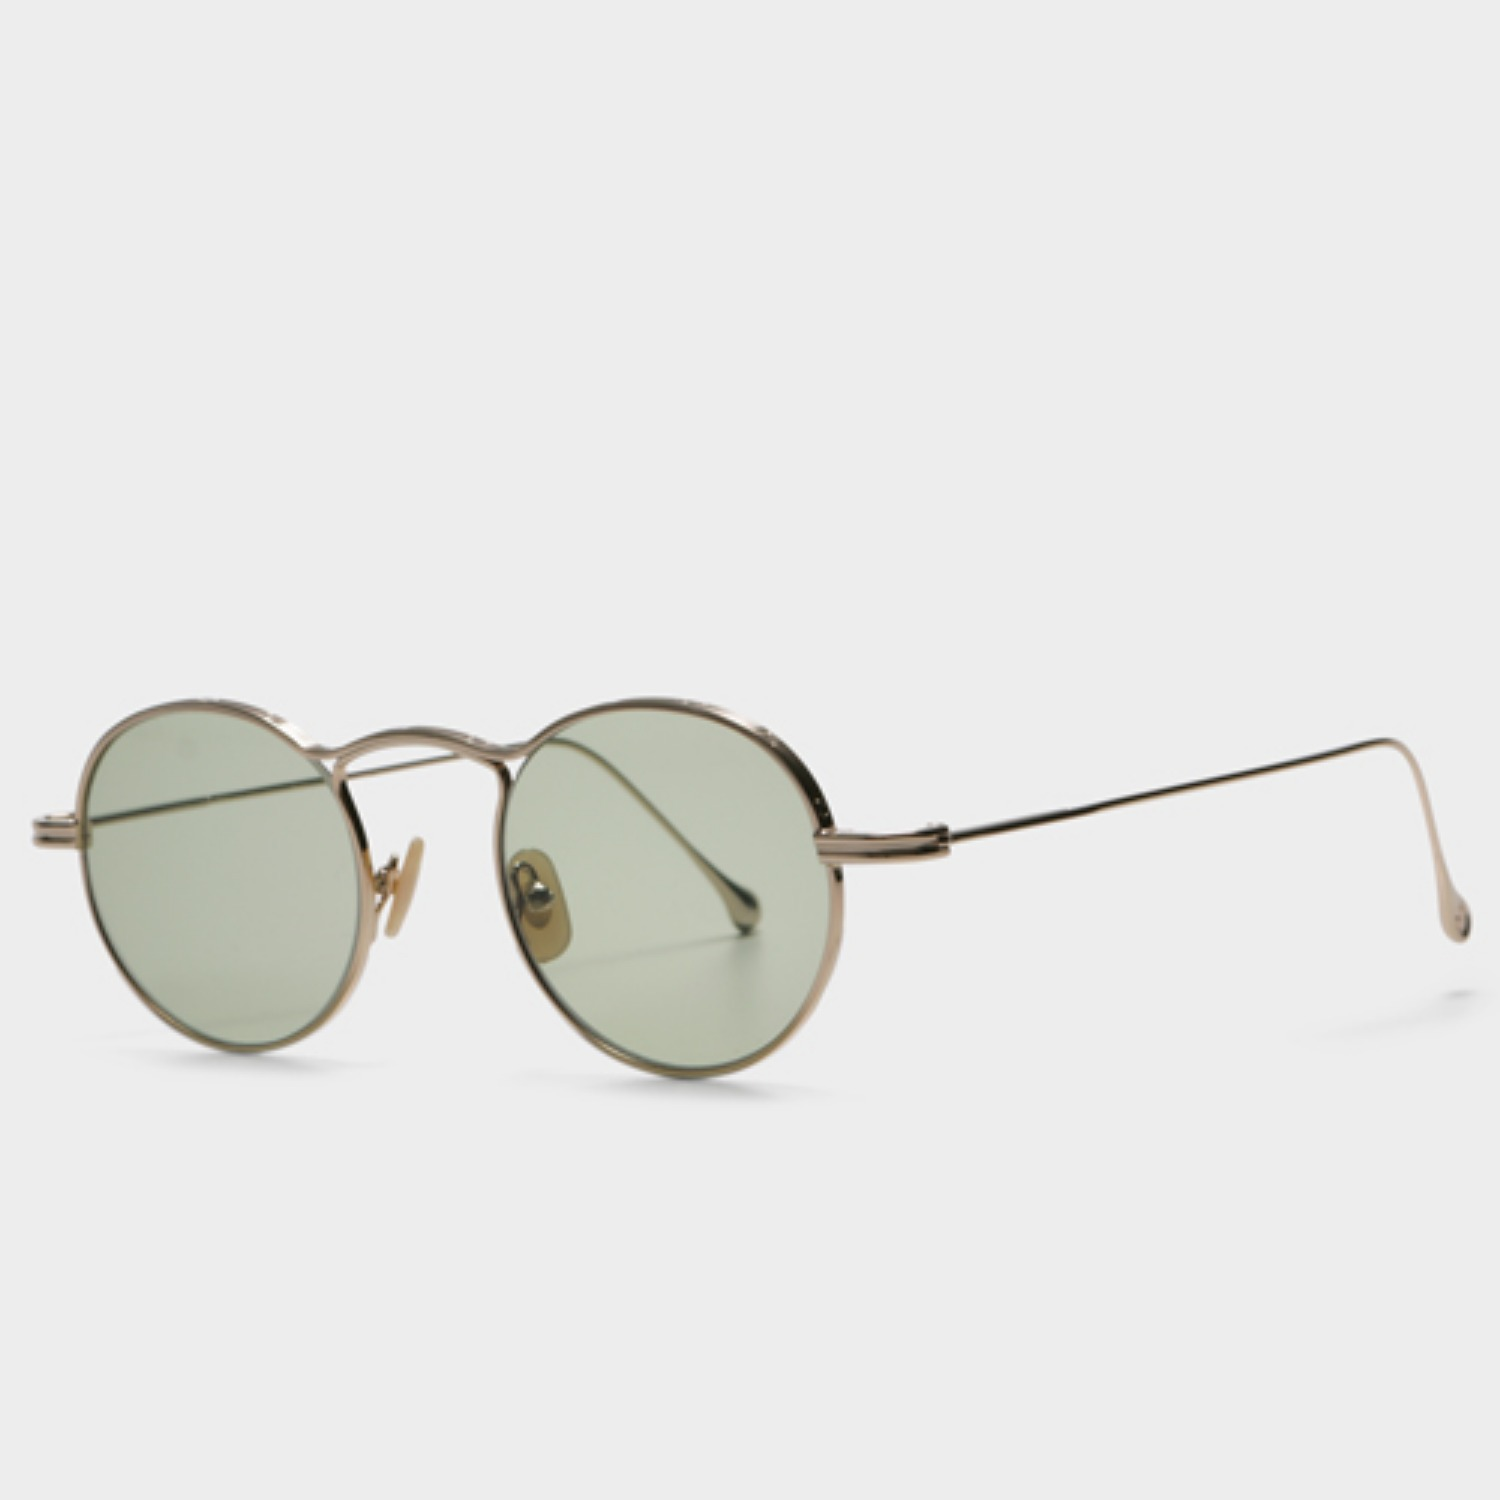 스틸러 HOLLY STL02 18K GOLD (Green Lens)